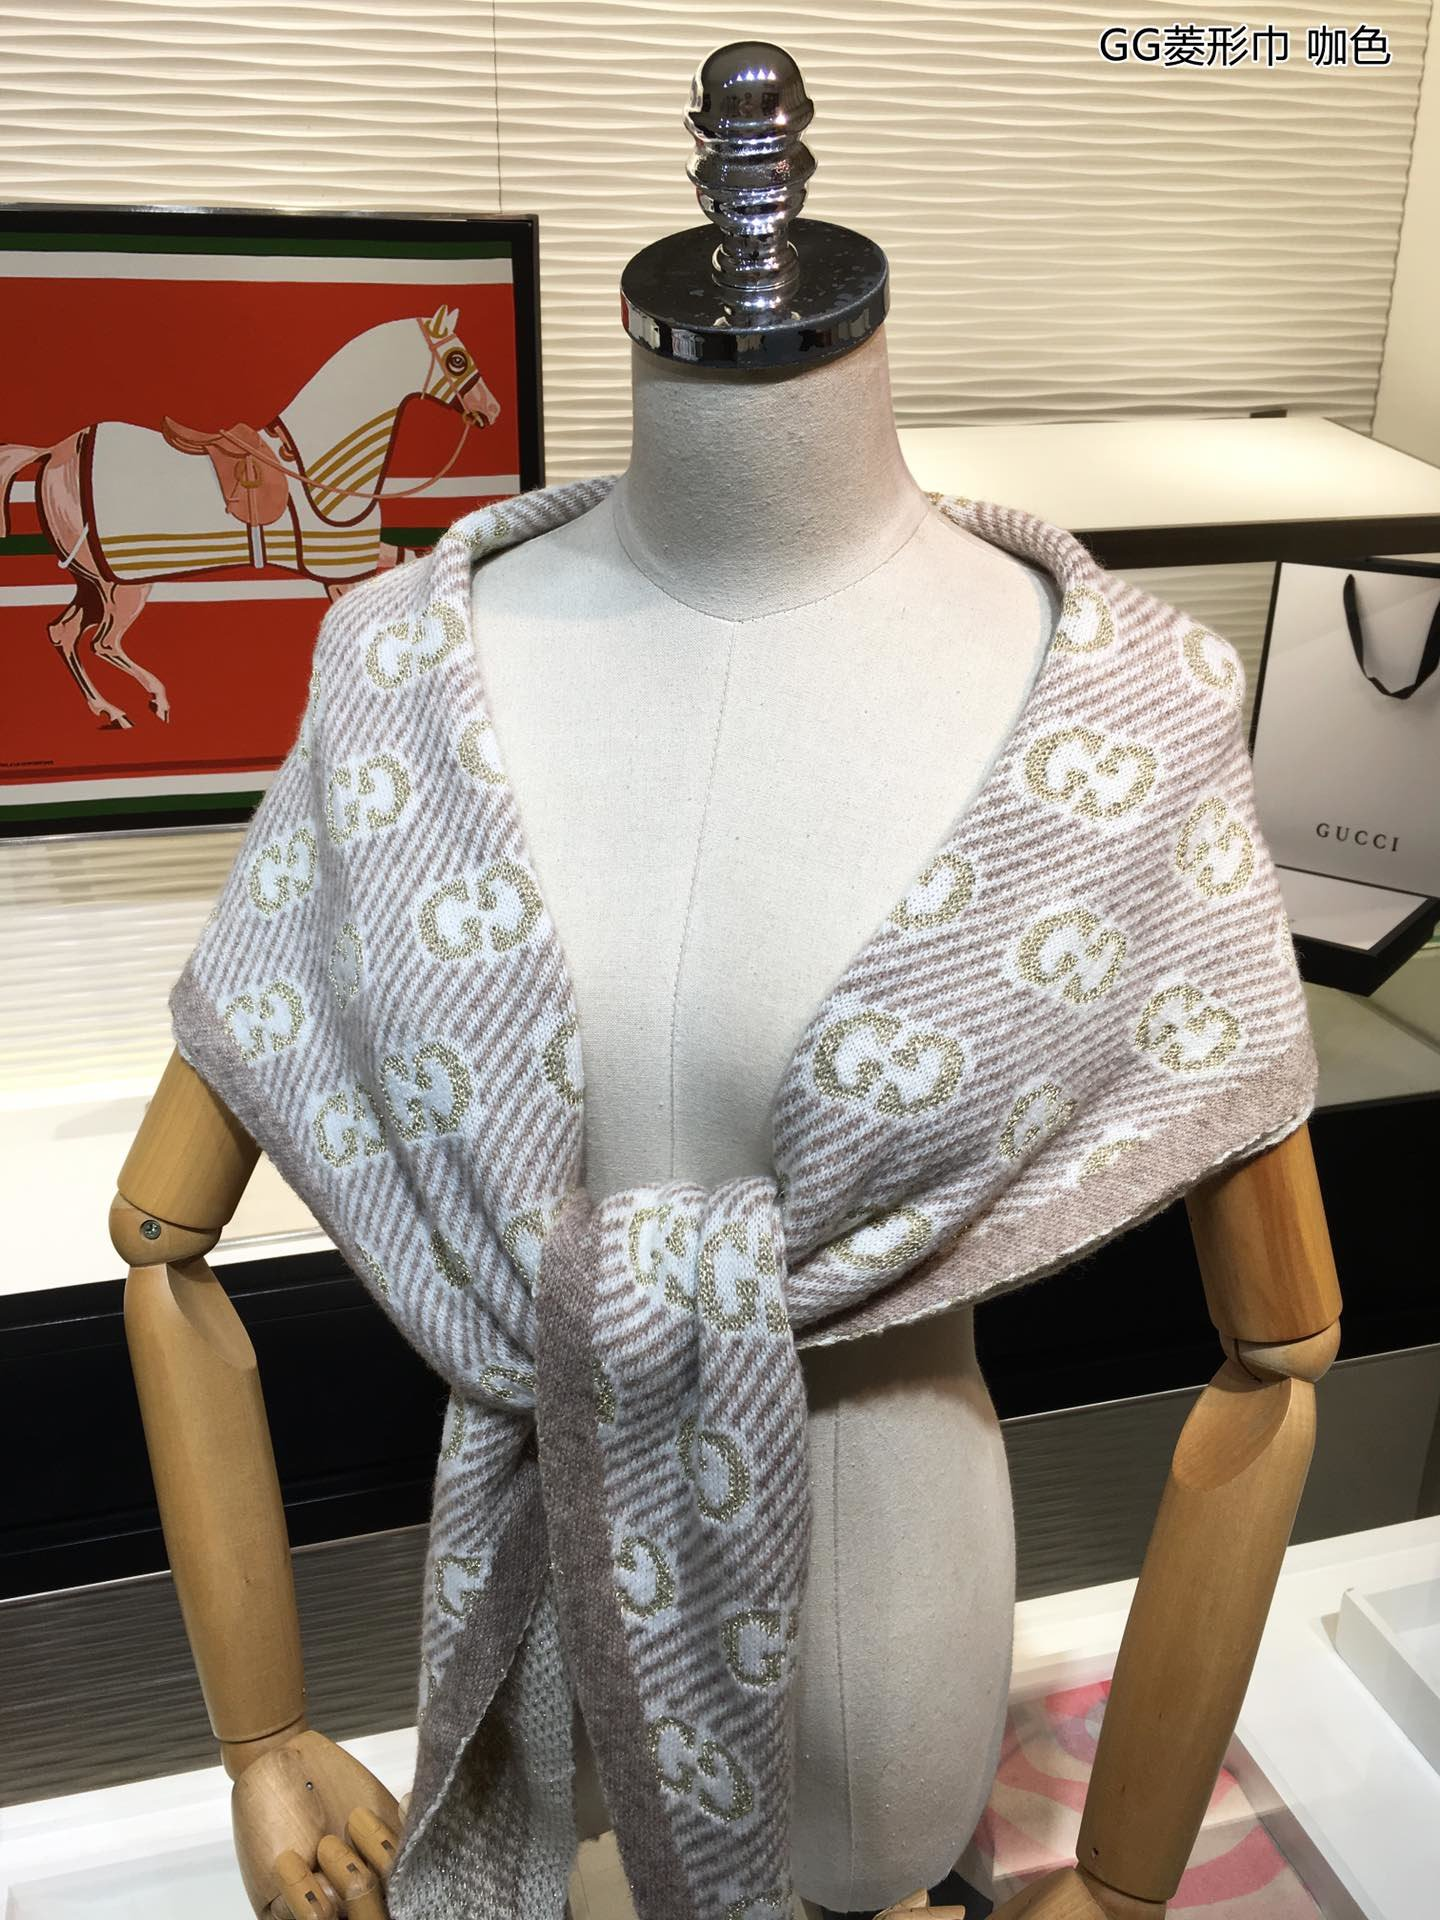 Gucci Scarves 1417